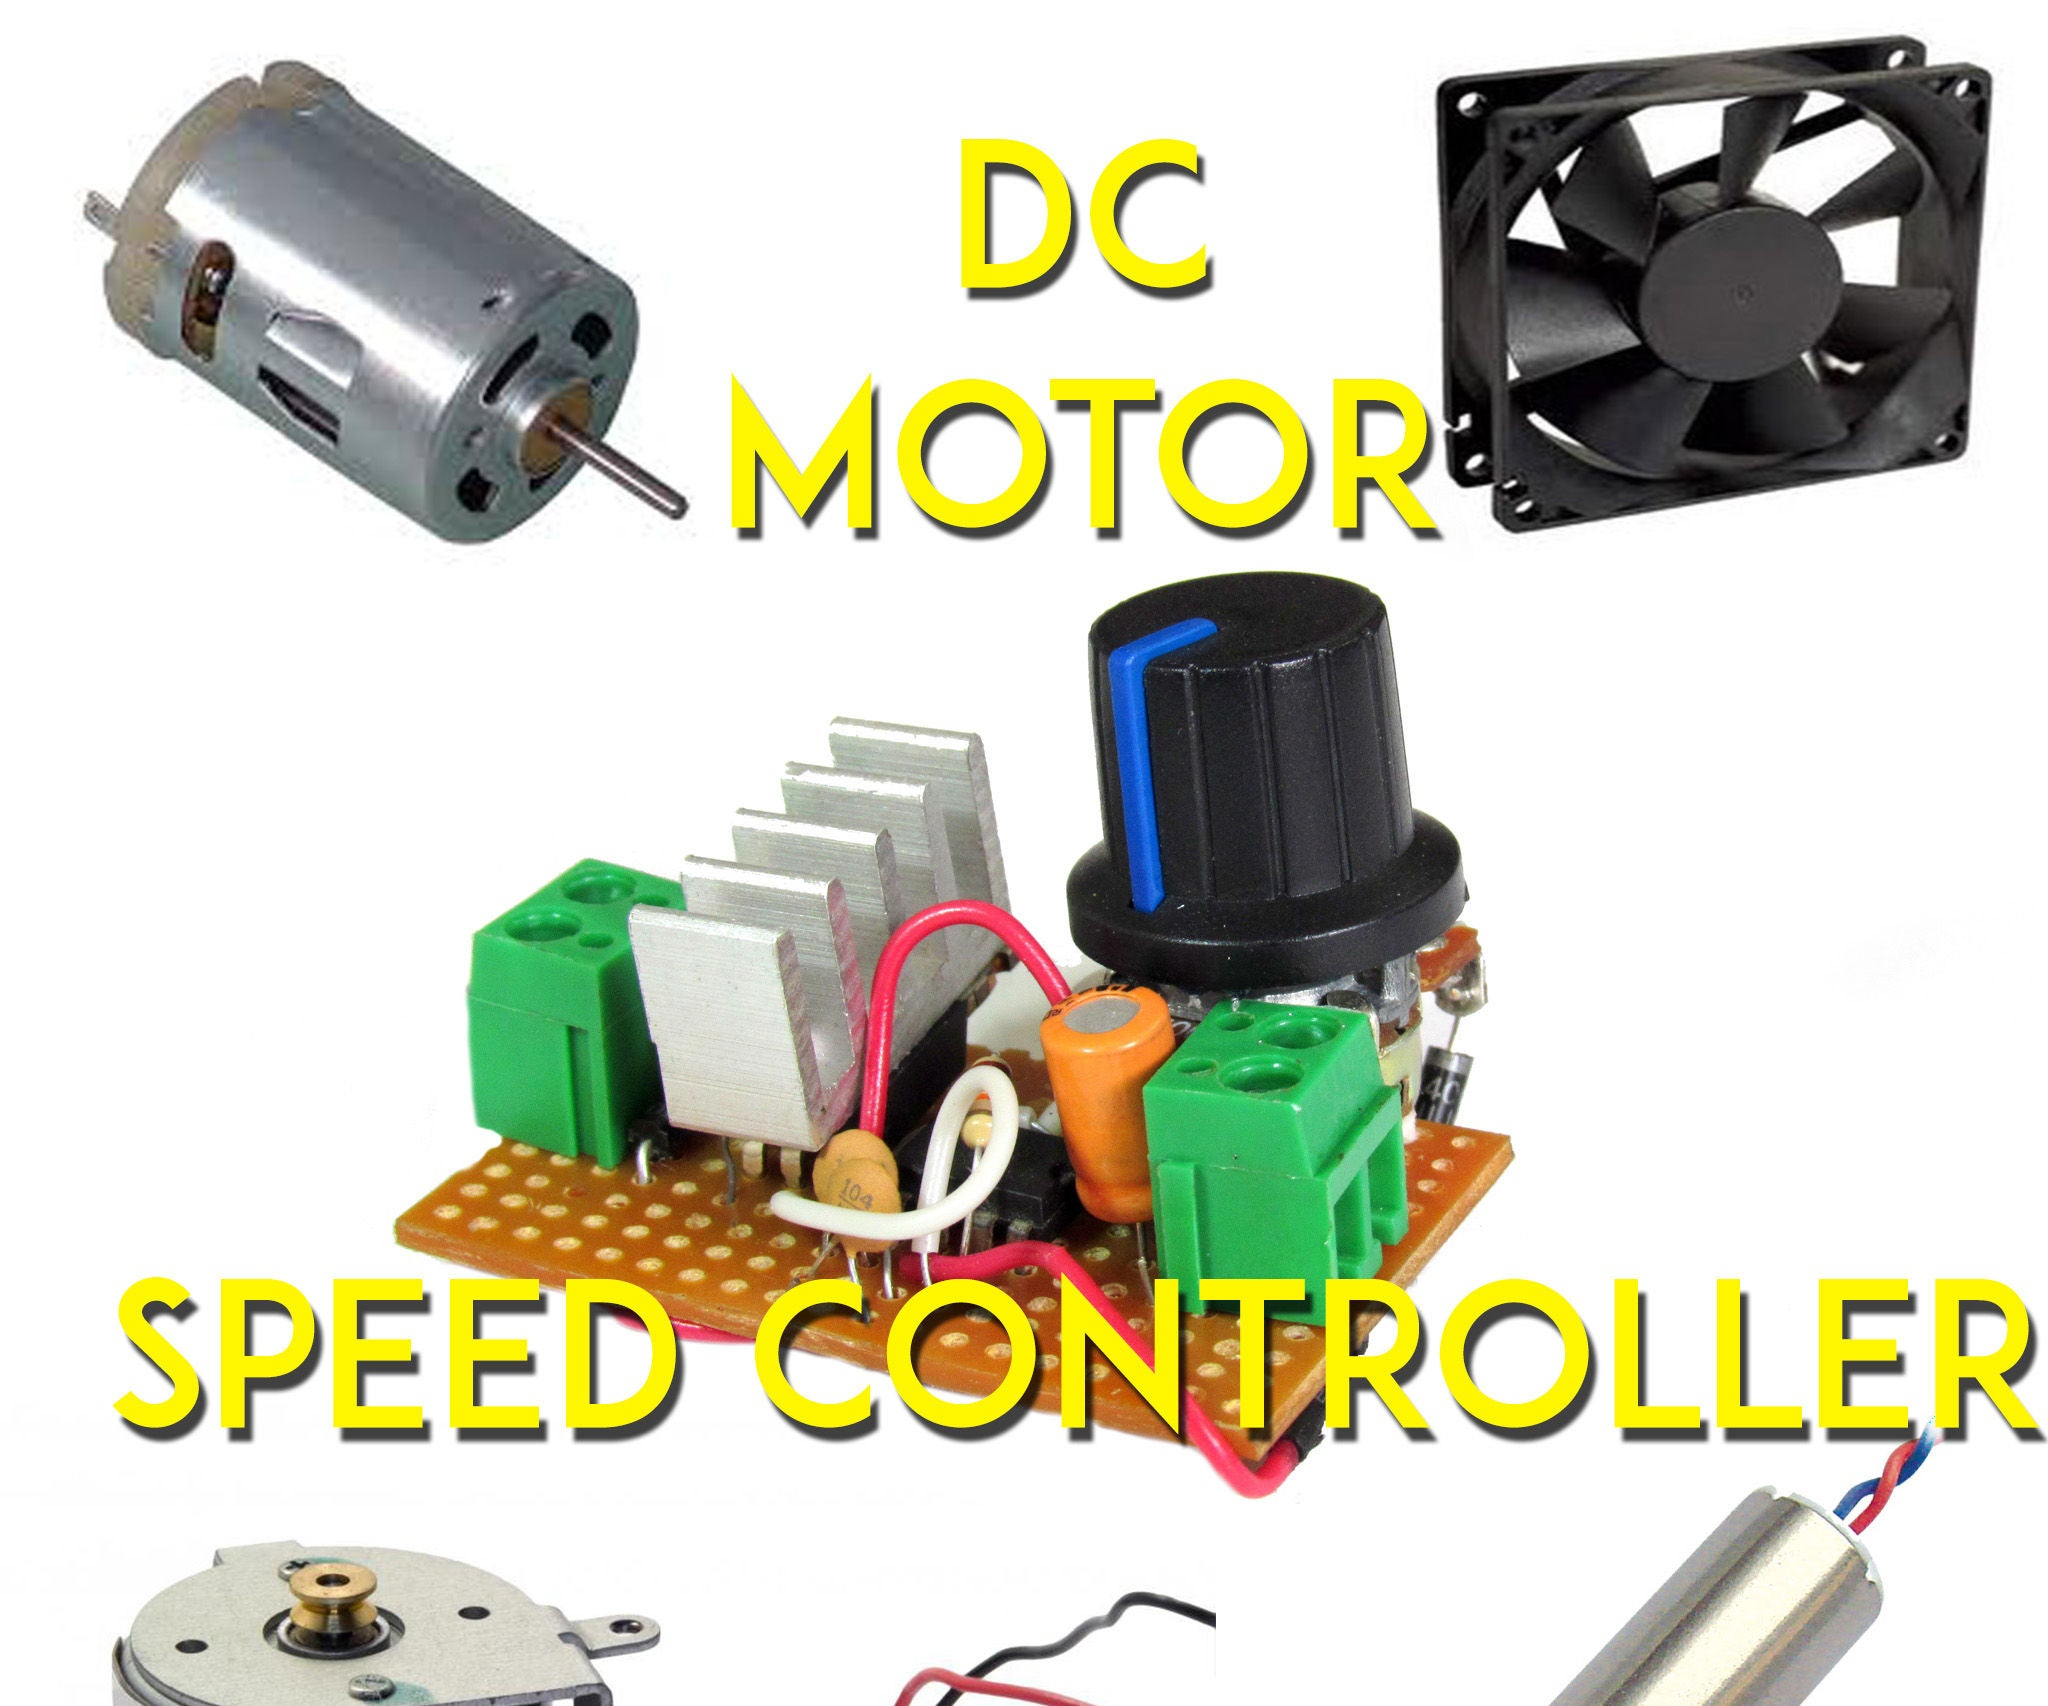 How To Make An Universal Dc Motor Speed Controller 5 Steps With Pwm Pulse Width Modulation For And Led Brightness Pictures